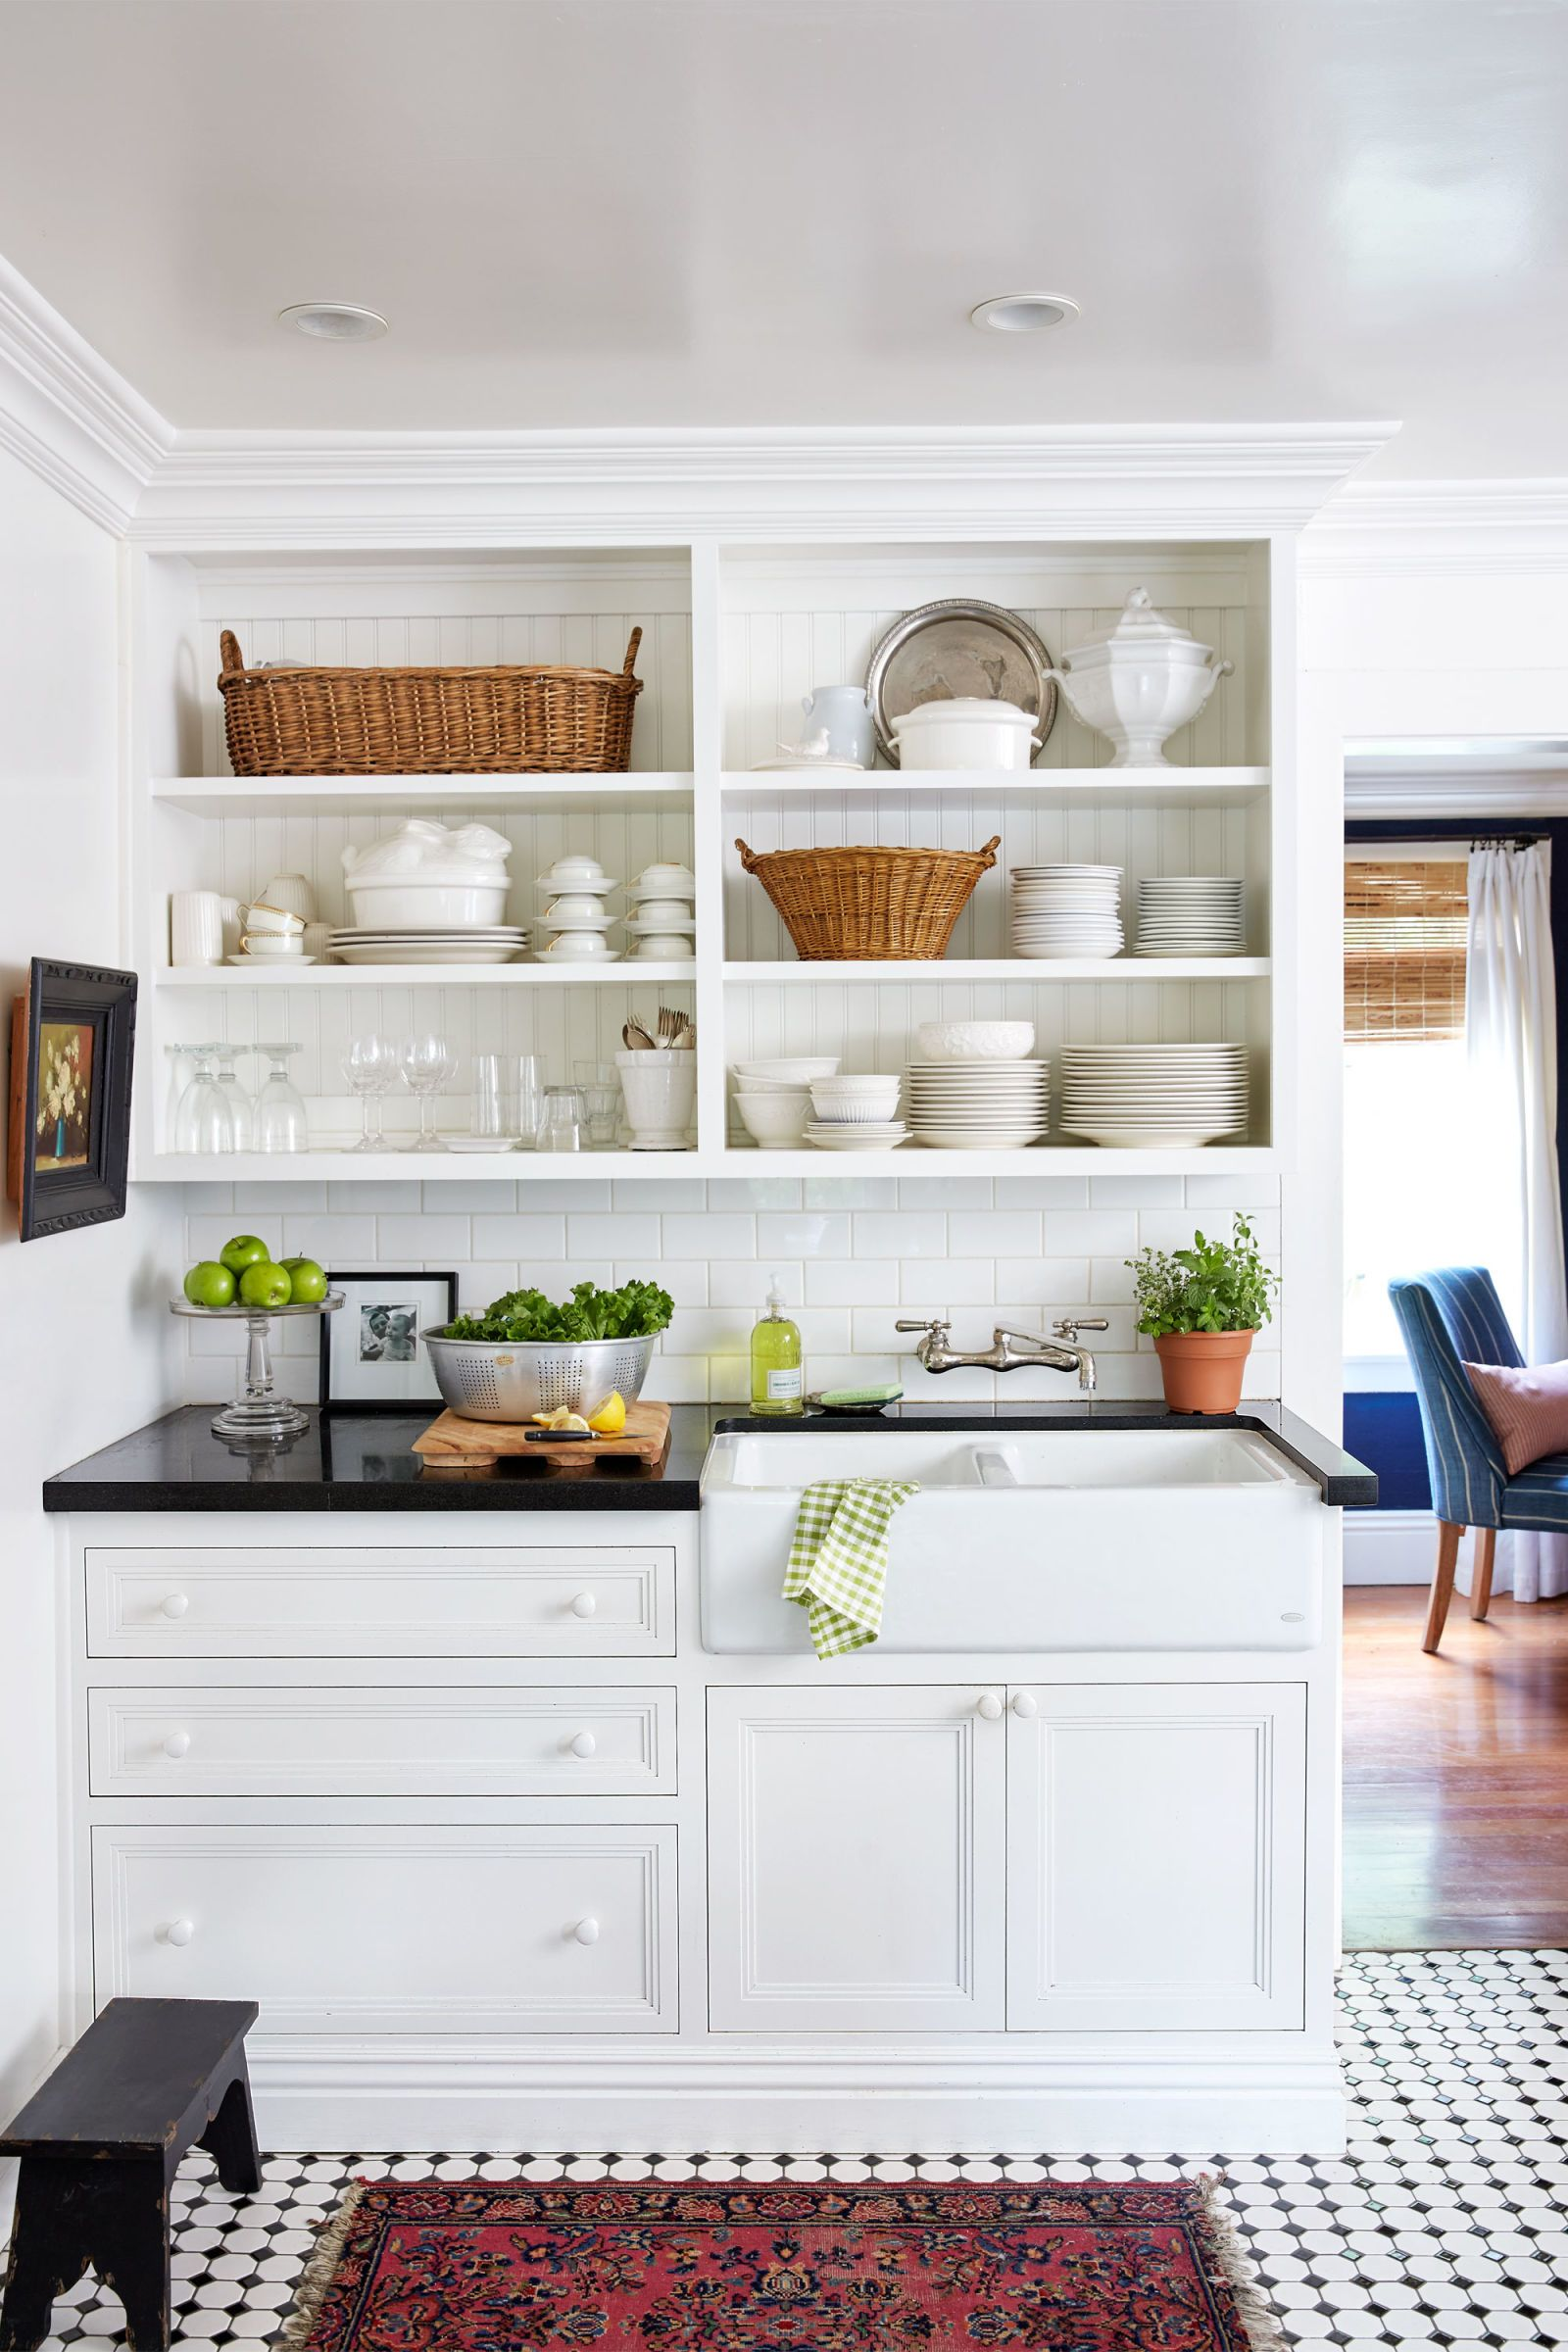 10 Must Follow Rules For Making A Small Space Beautiful Small Cottage Kitchen Tiny House Kitchen Kitchen Layout